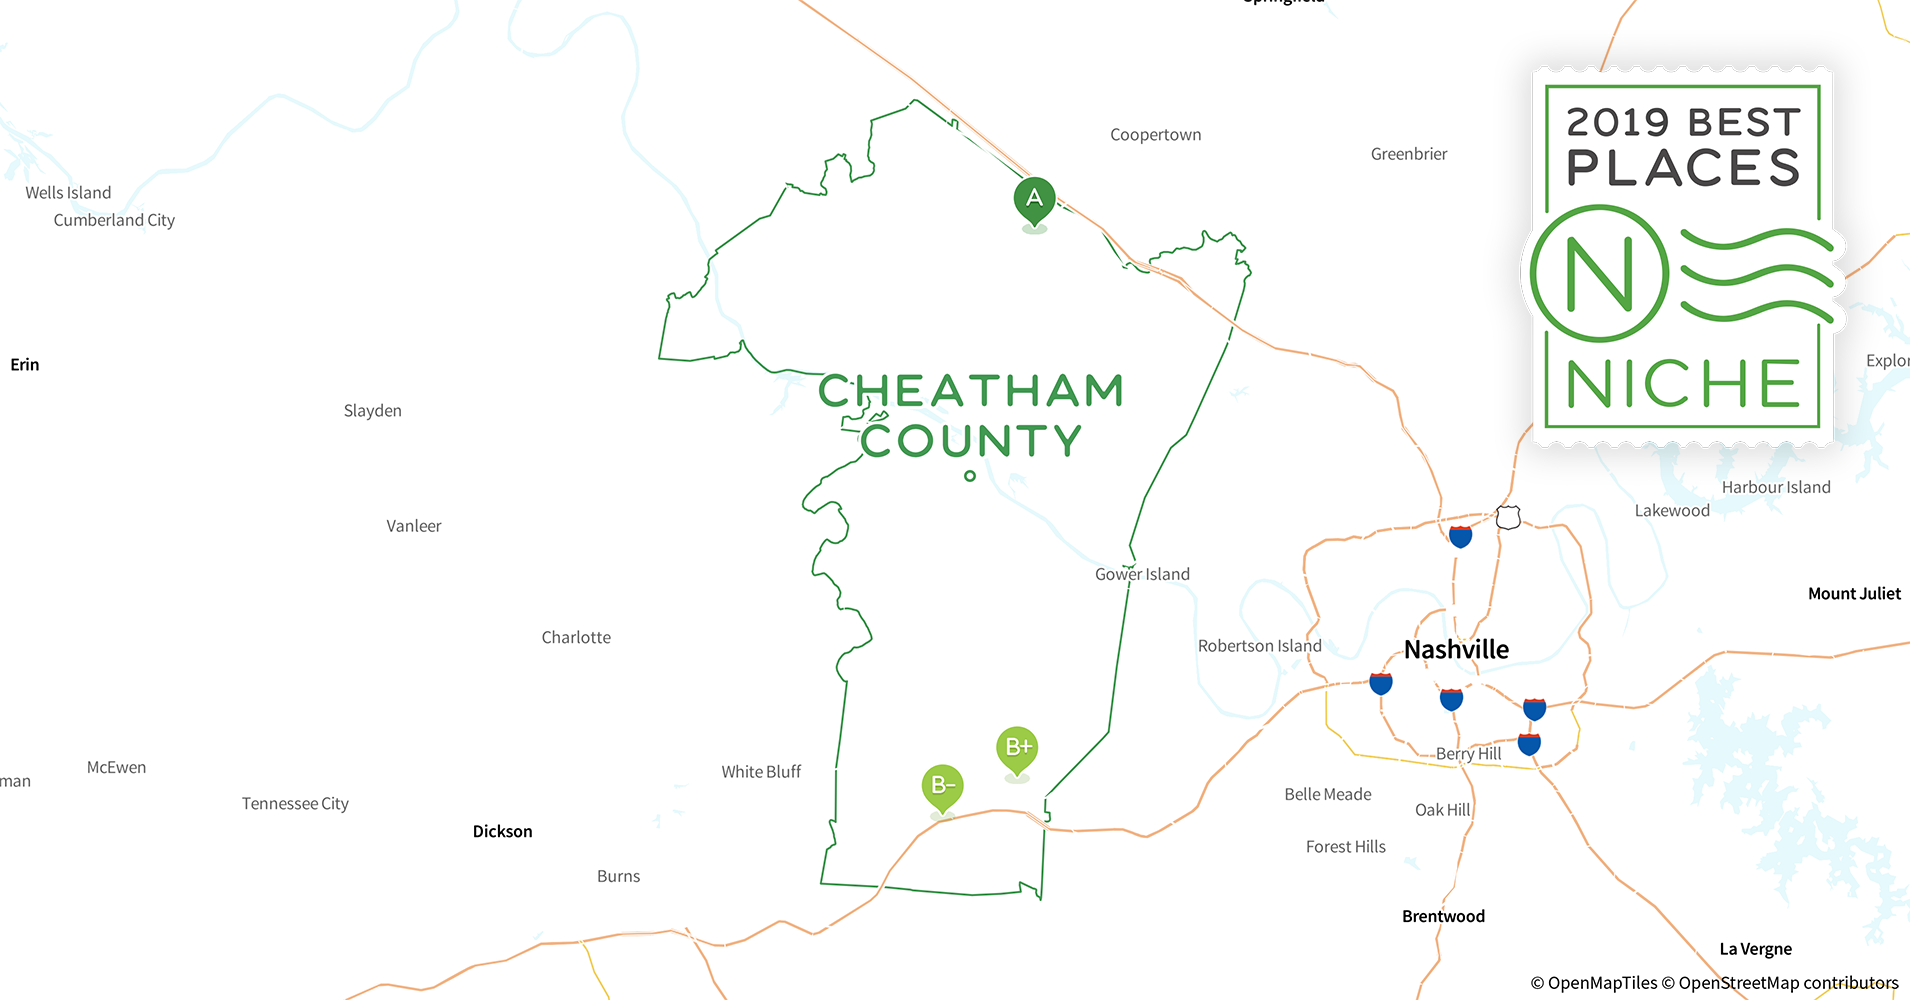 2019 Safe Places to Live in Cheatham County, TN - Niche